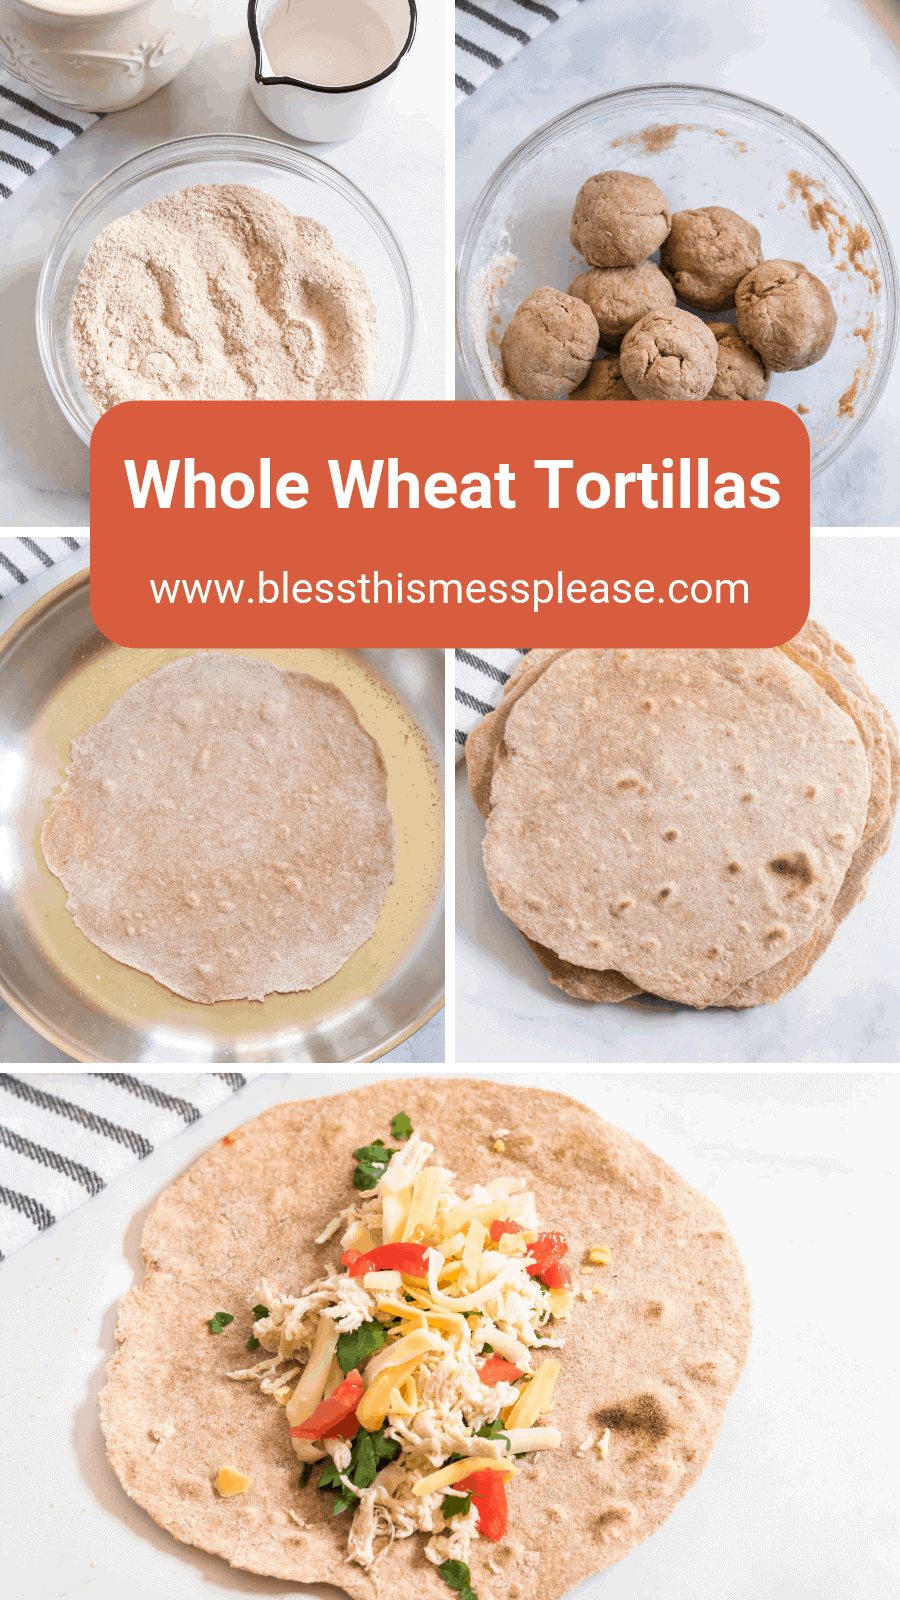 Hearty and healthy, whole wheat tortillas are beyond simple to make and go great with bold flavored wraps, tacos, and gyros!